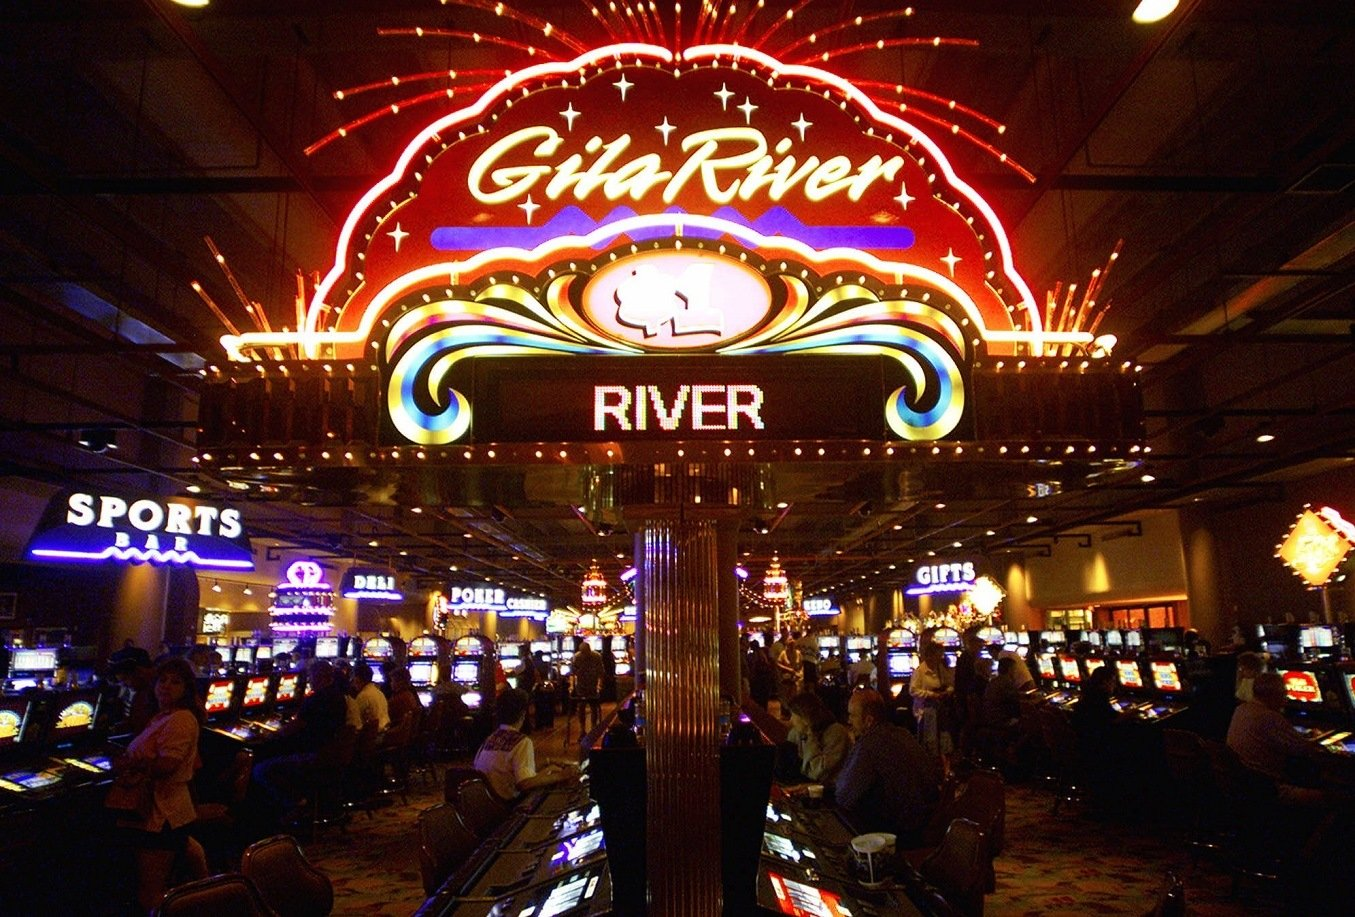 Gila River Casino, situated in Phoenix Arizona